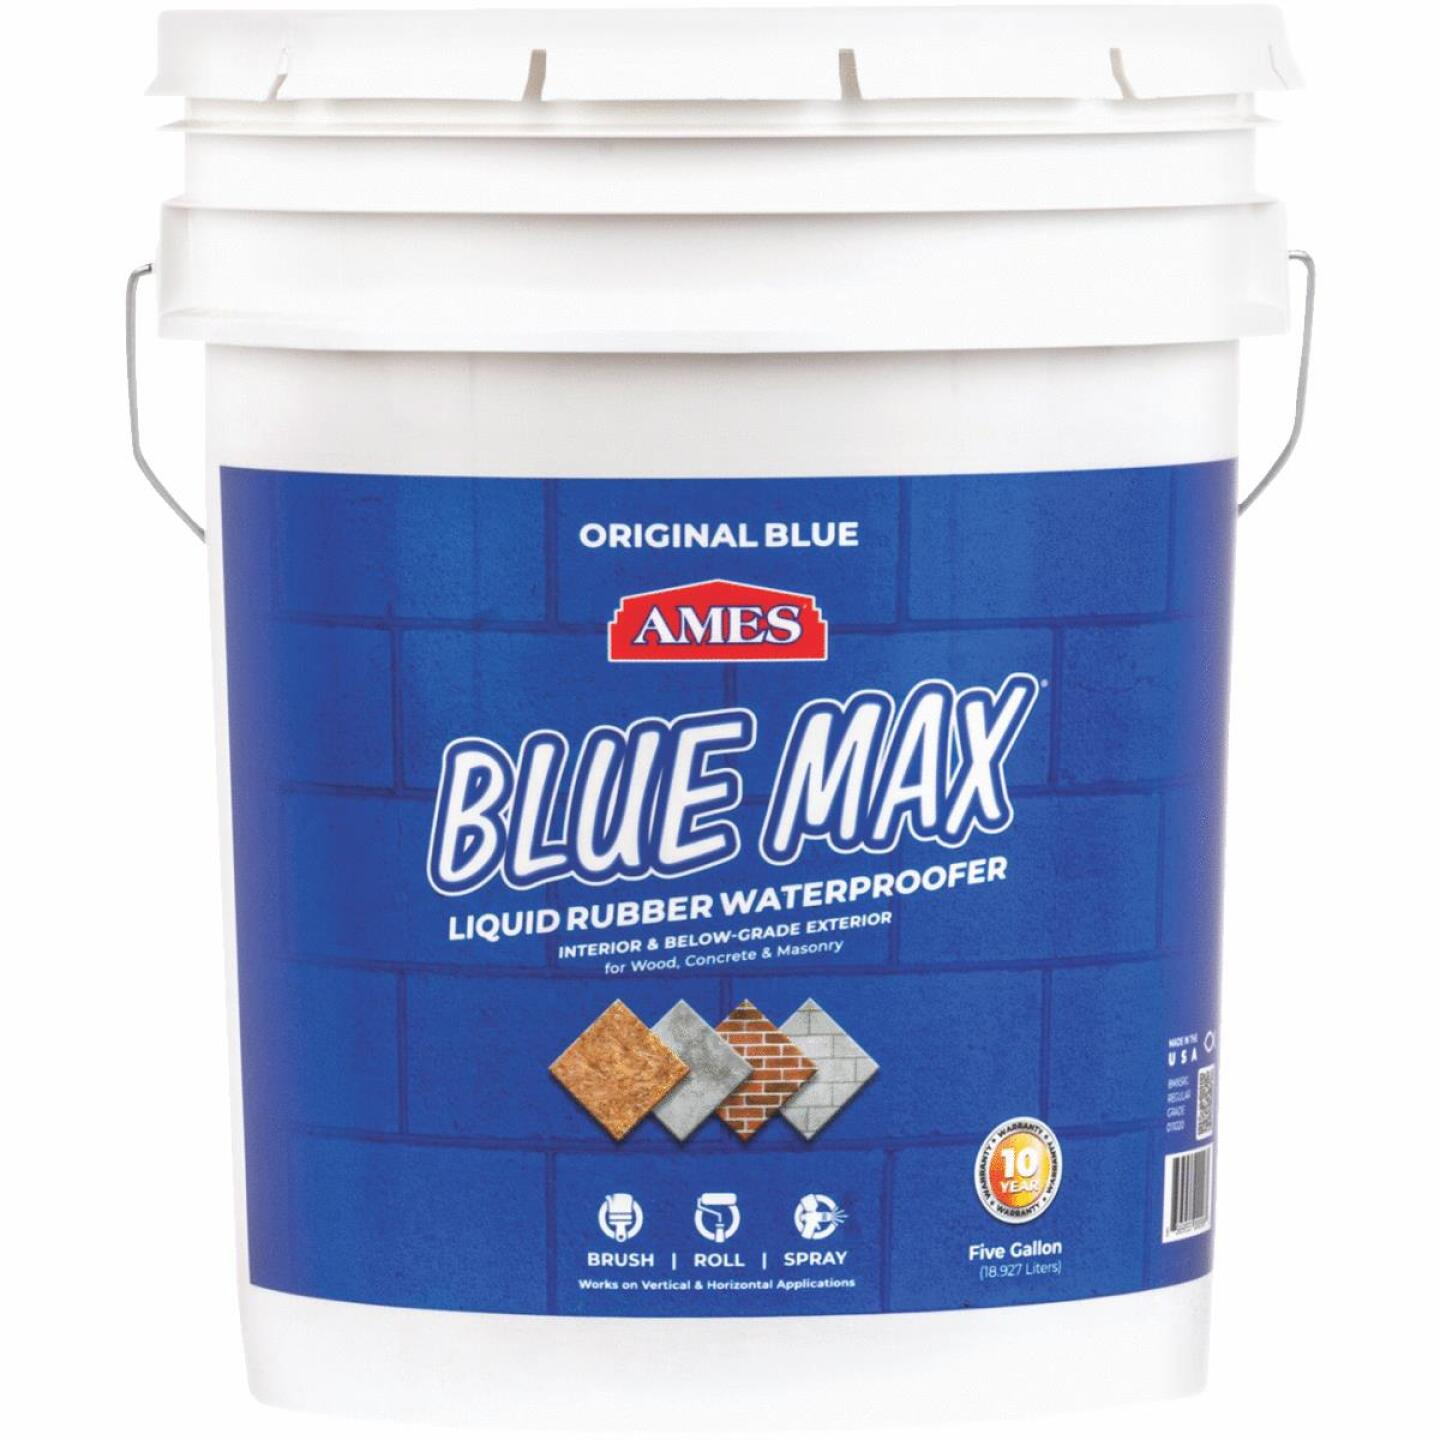 Ames Blue Max 5 Gal. Liquid Rubber Membrane Waterproofing Coating Image 1